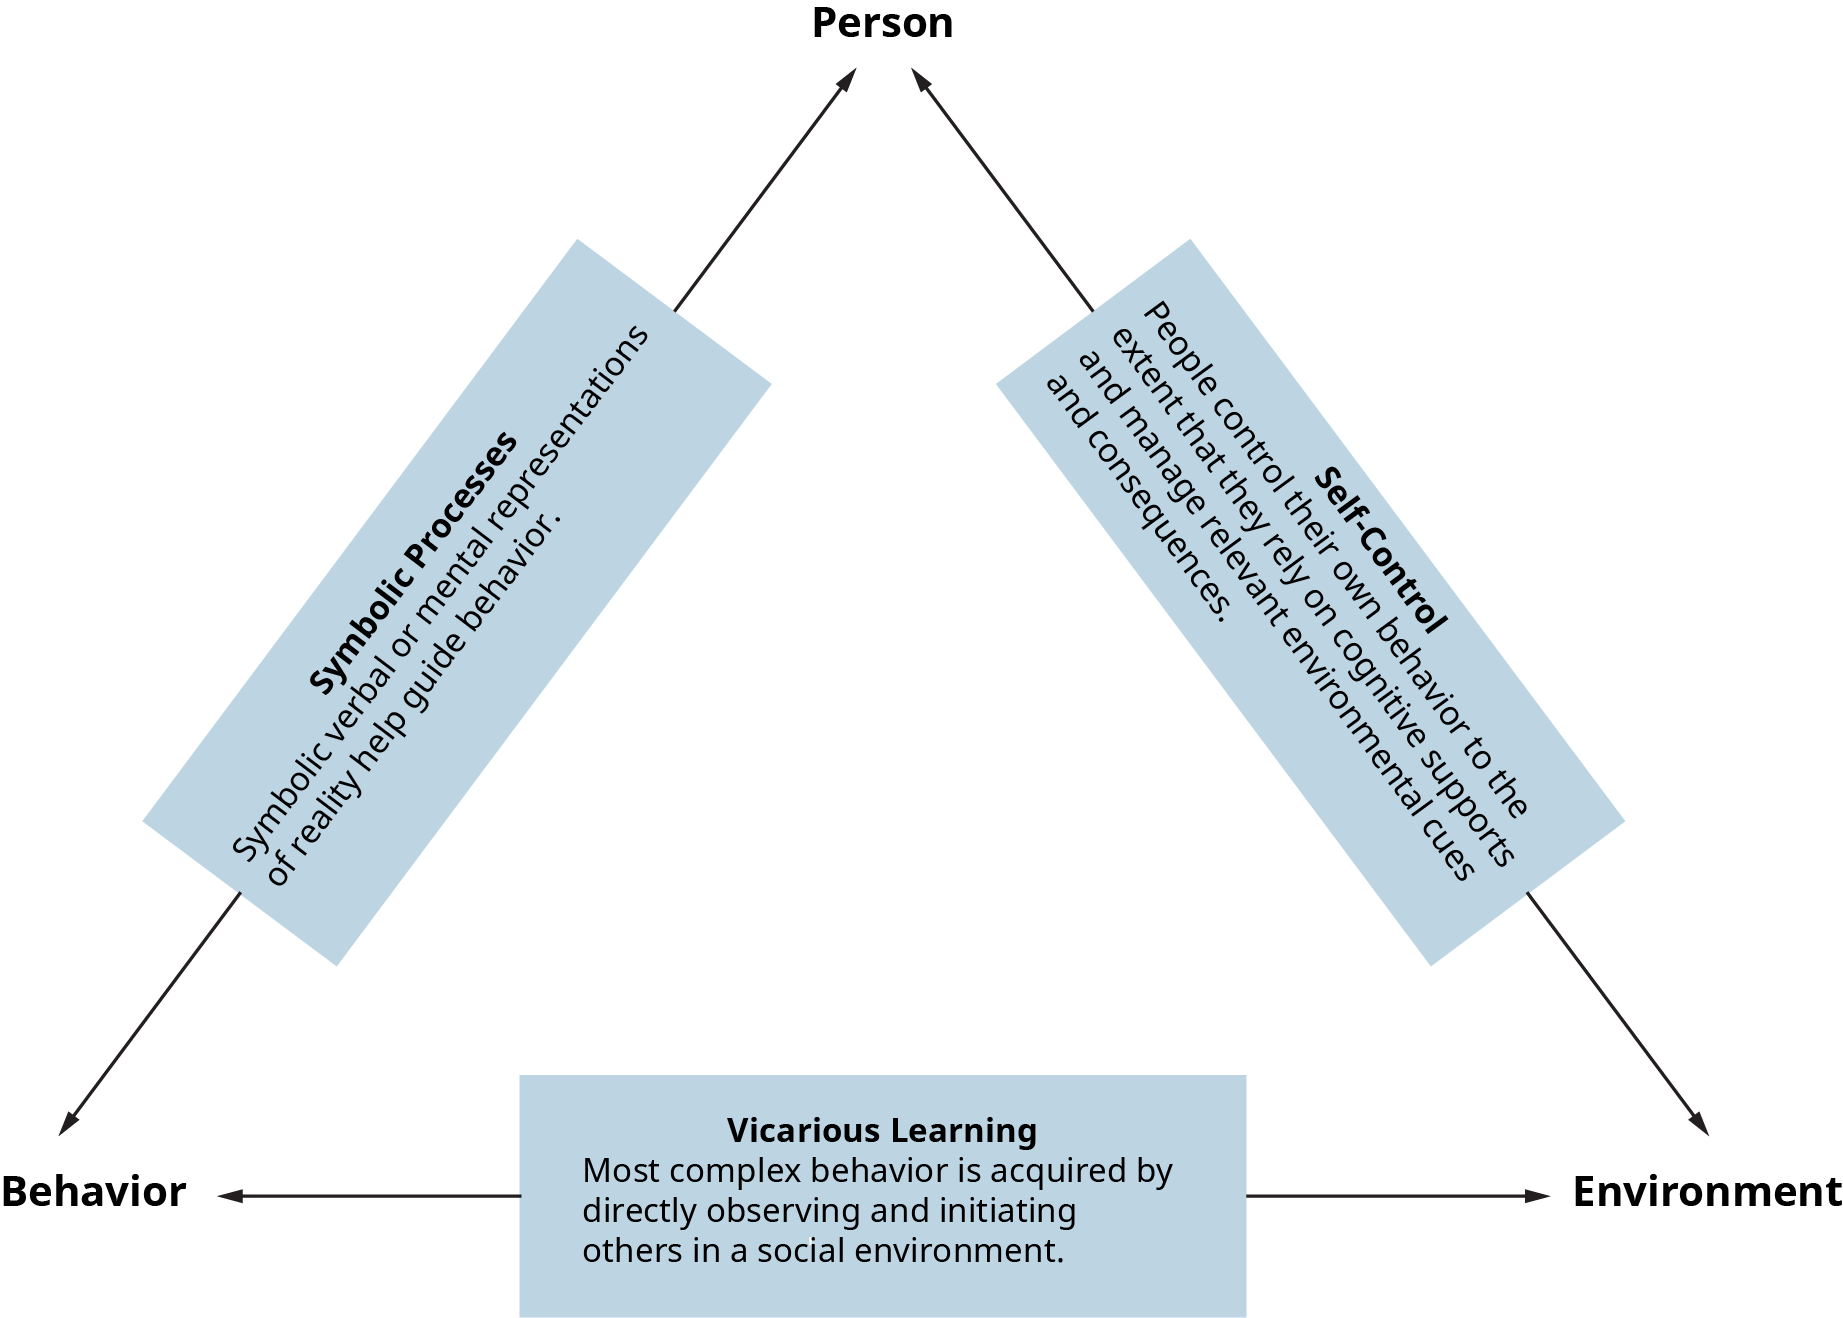 A diagram shows the basic model of social learning.